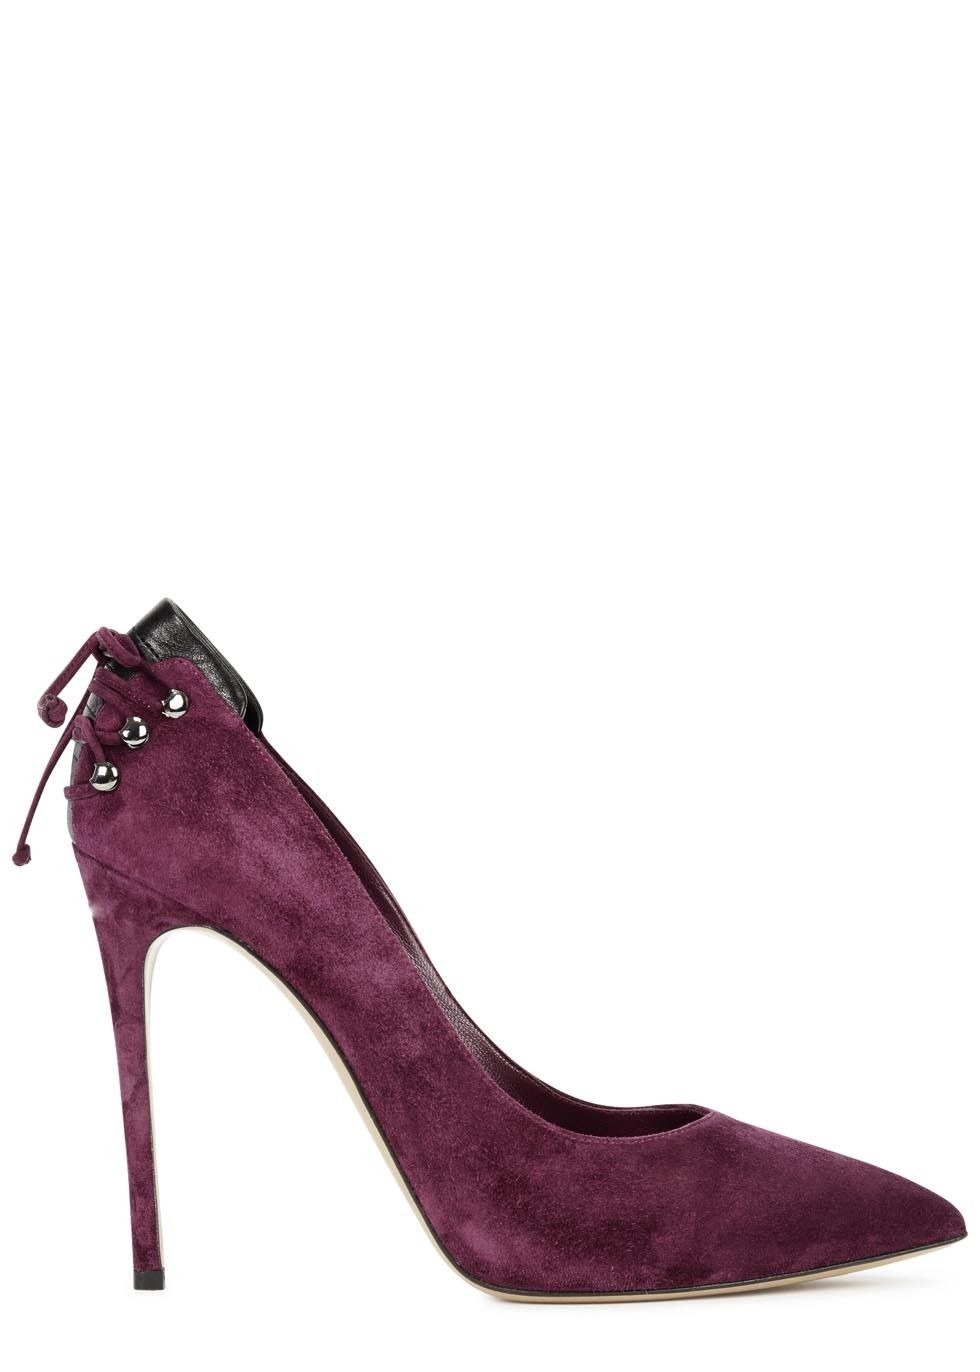 Casadei dark magenta suede pumps Heel measures approximately 4.5 inches   110mm Lace-up embellishment at back d700d7e9837